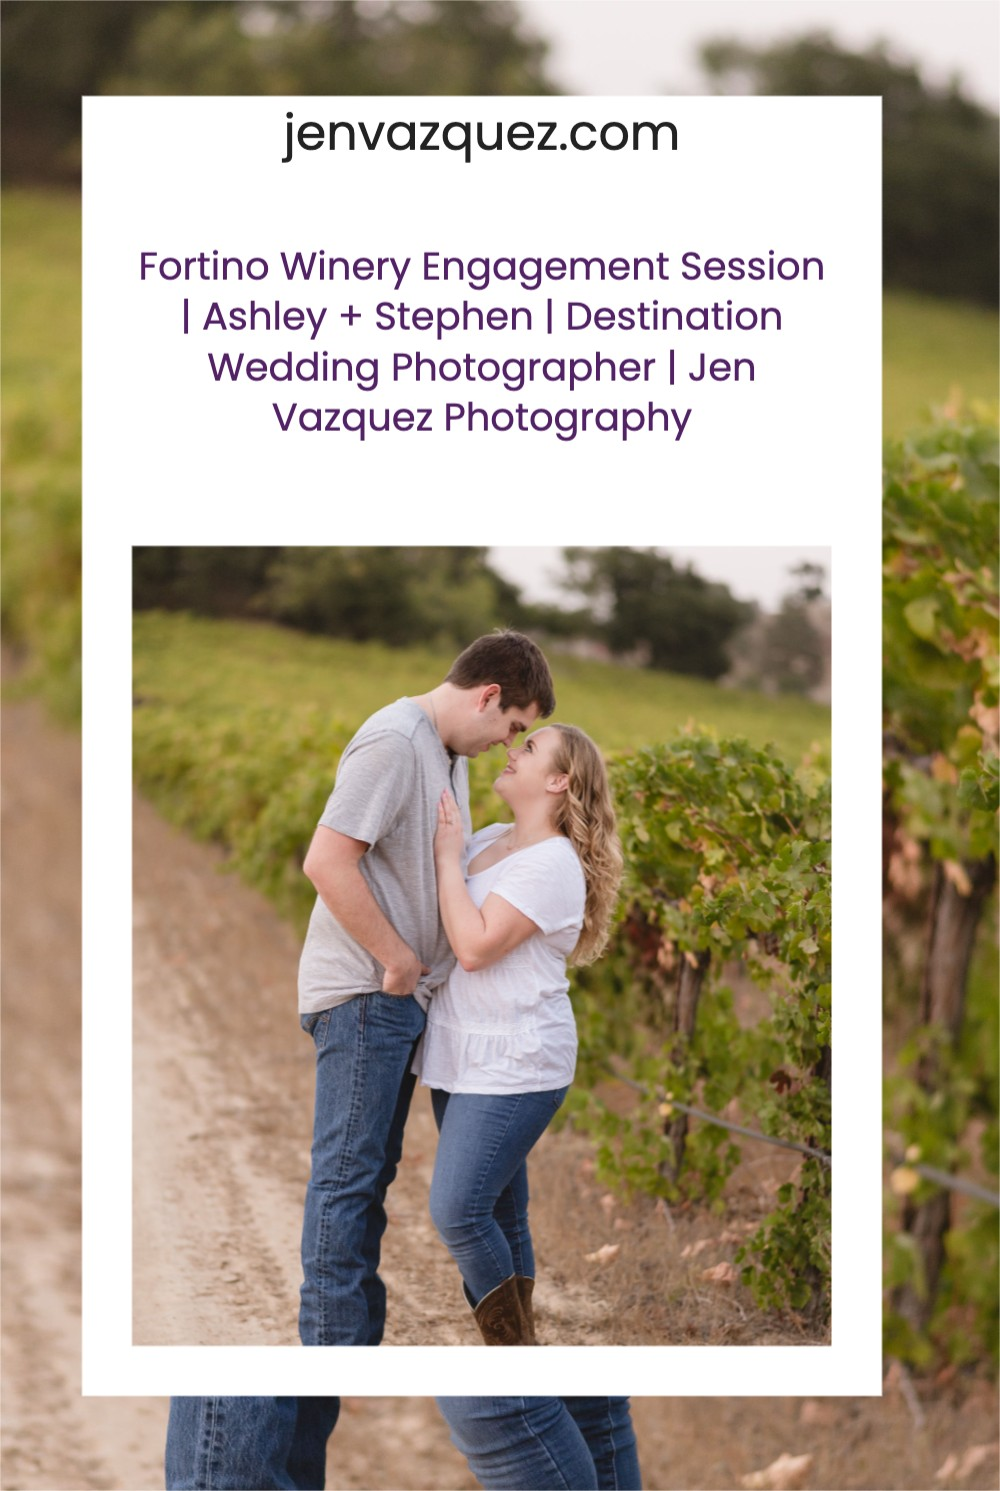 Fortino-Winery-Engagement-Session-|-Ashley-+-Stephen-|-Destination-Wedding-Photographer-|-Jen-Vazquez-Photography 1